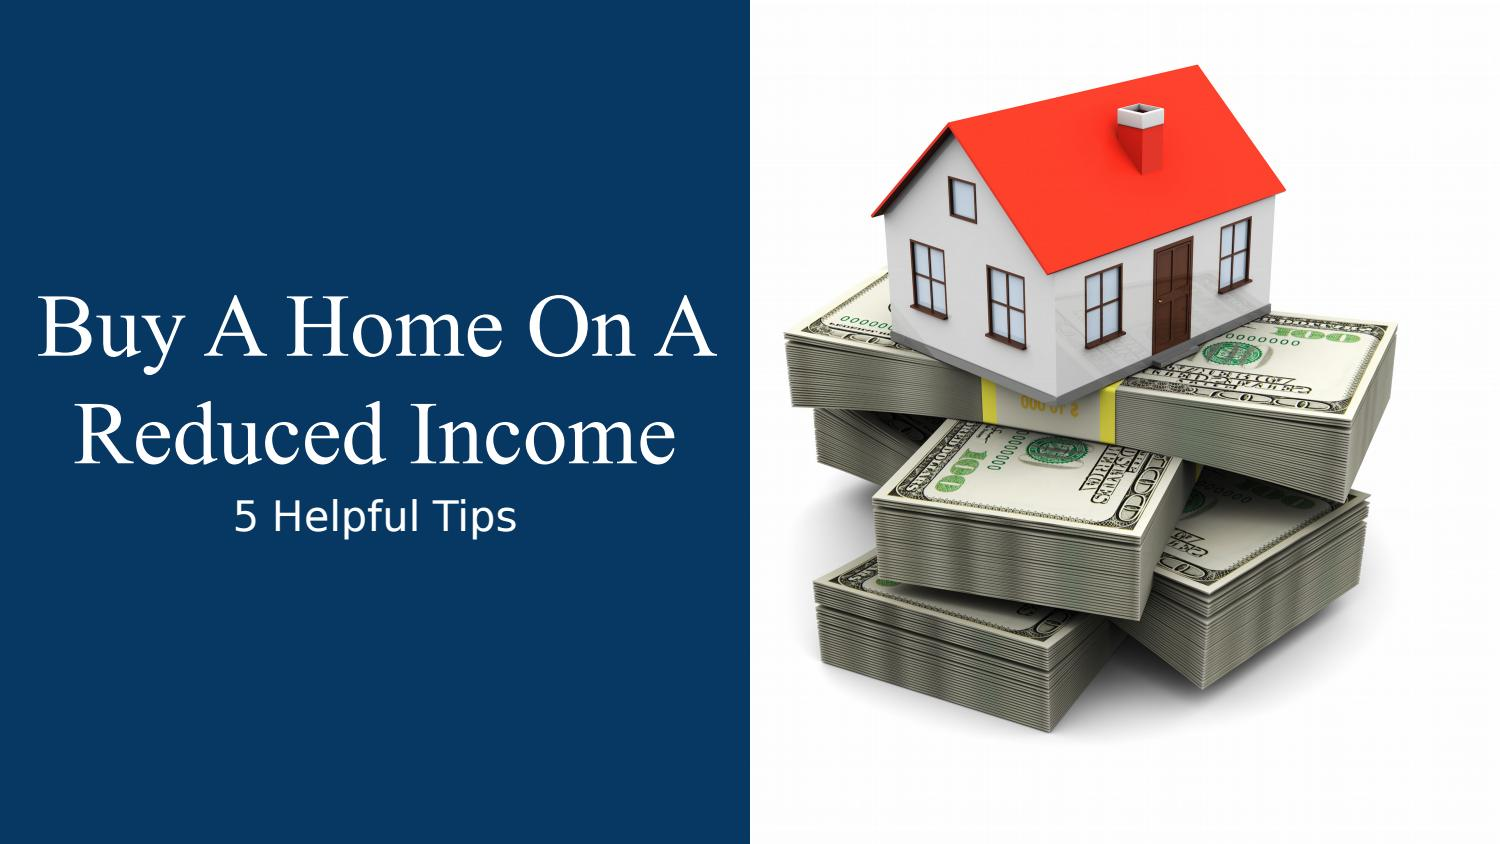 5 Tips To Help You Buy A Home On A Reduced Income by Jamie Harrison - Real Estate Agent - Issuu